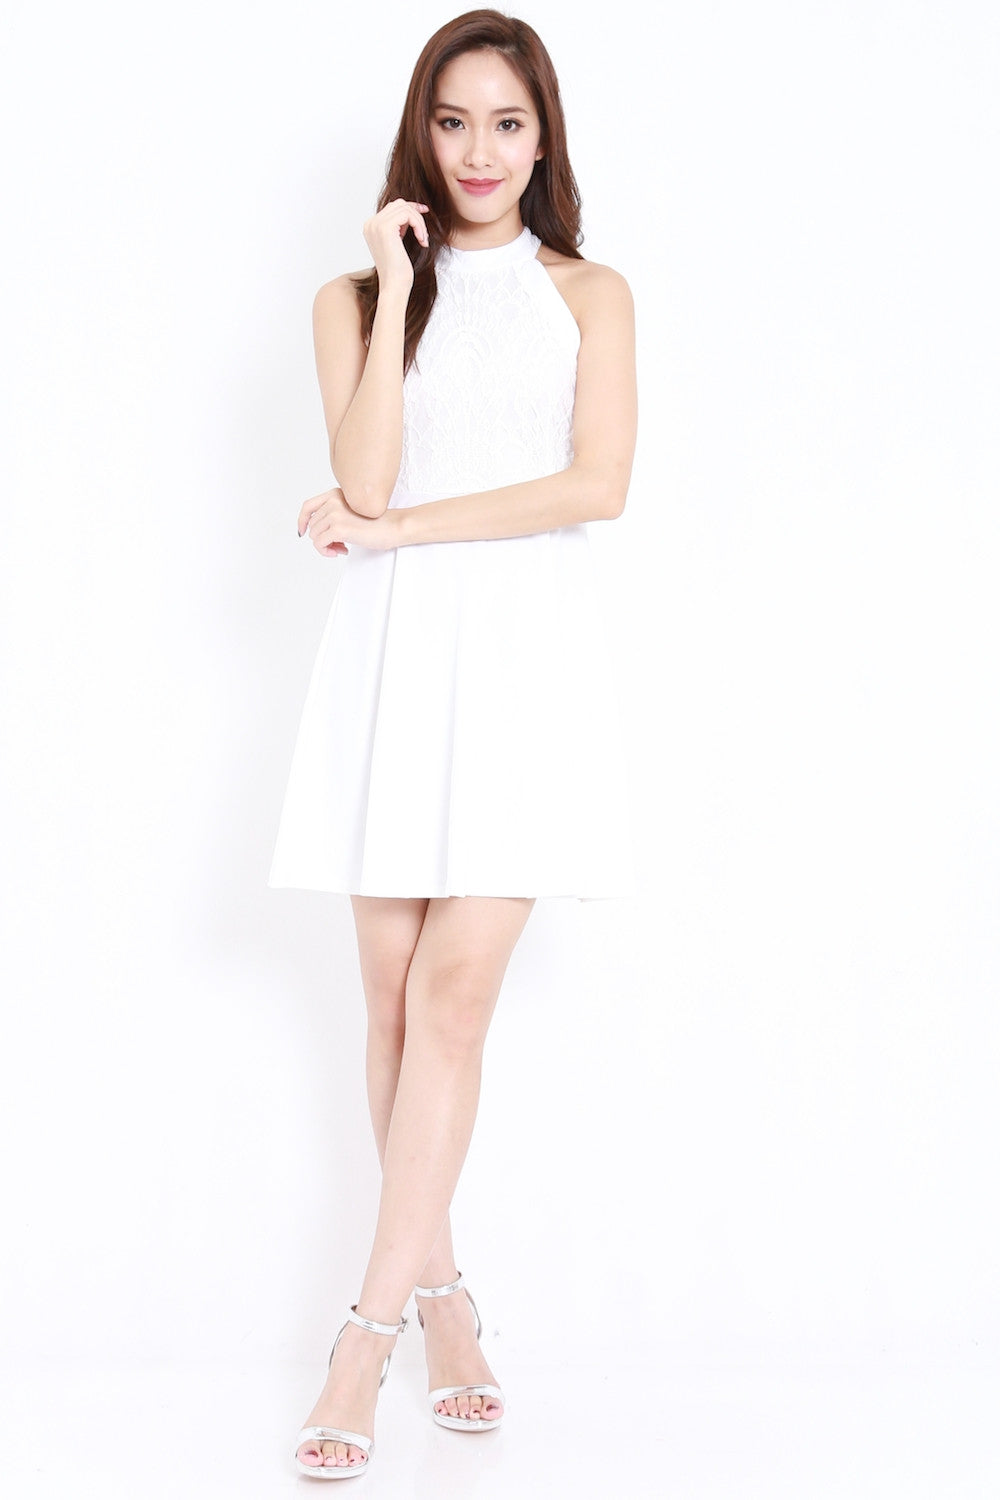 Home / Dresses / High Neck Crochet Dress (White)